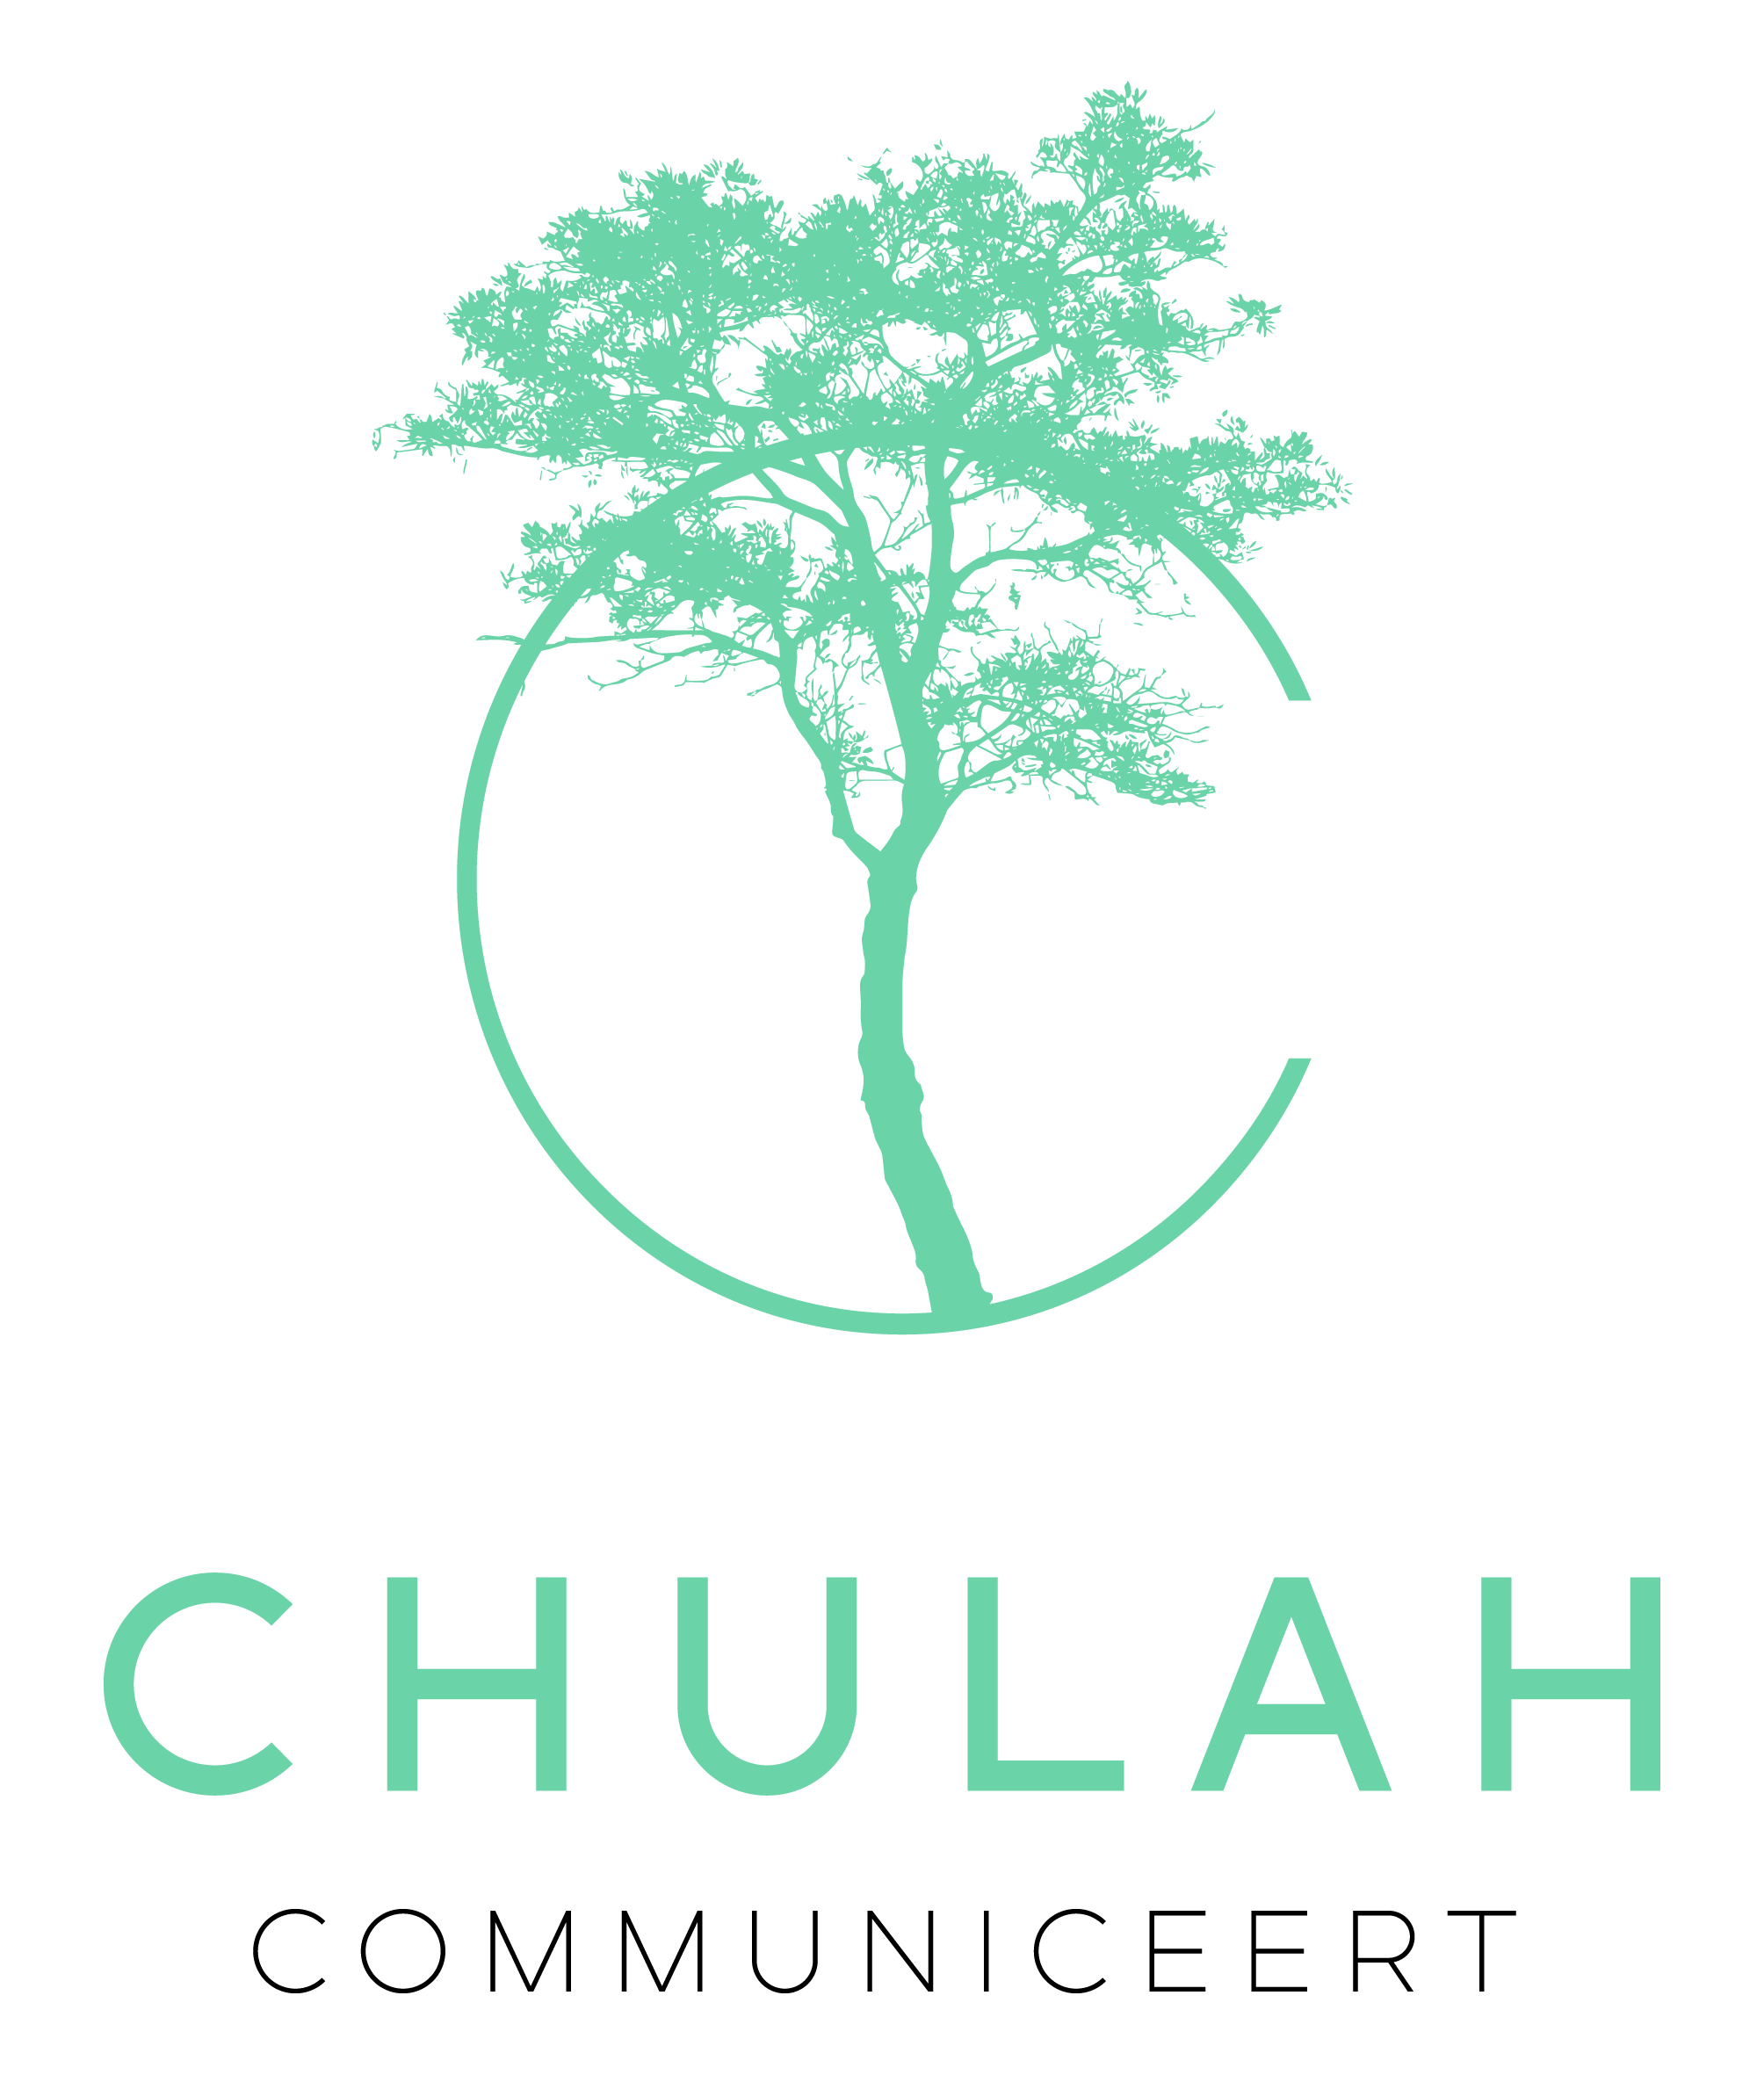 Chulah Communiceert